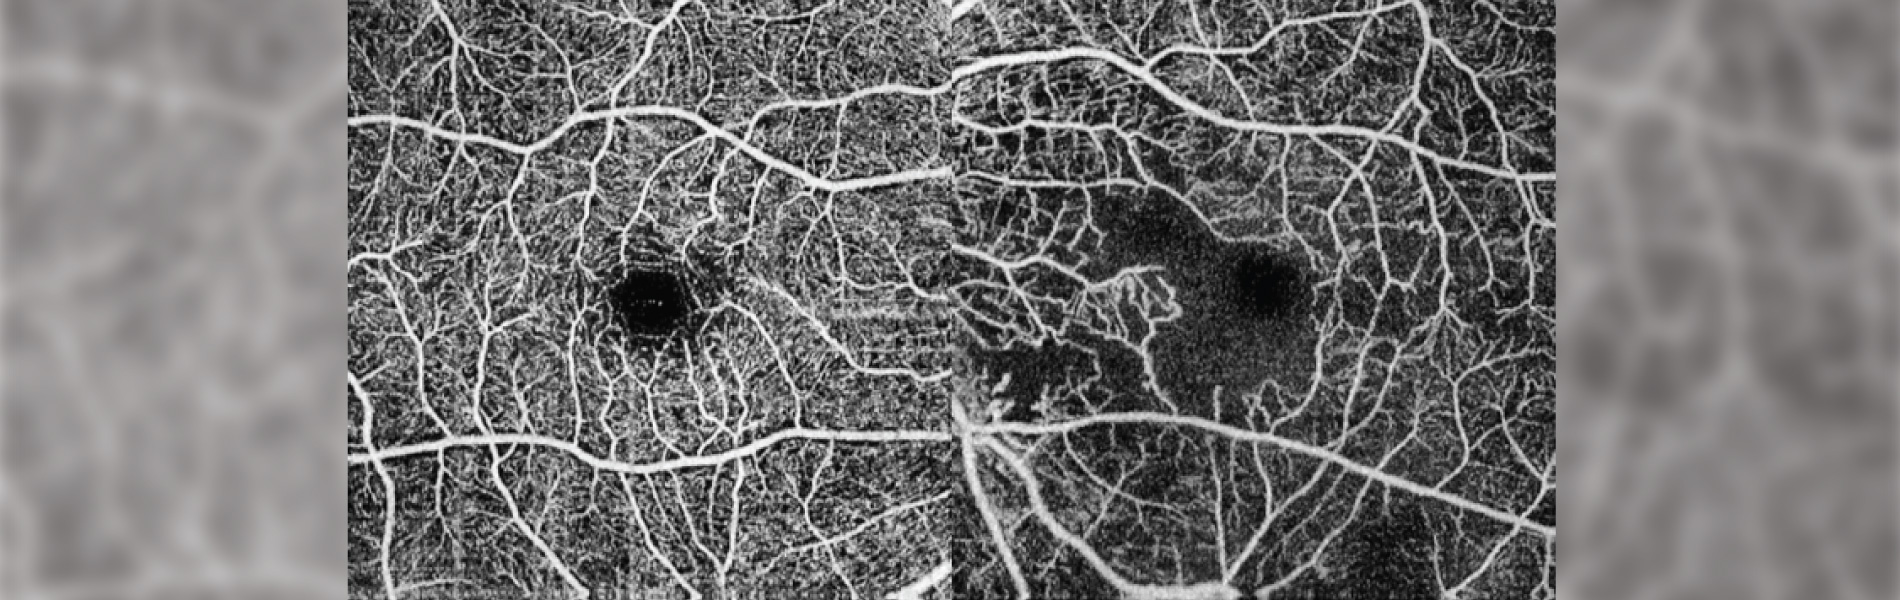 Two optical coherence tomography angiography scans show normal capillary vascular density in the macula of the eye